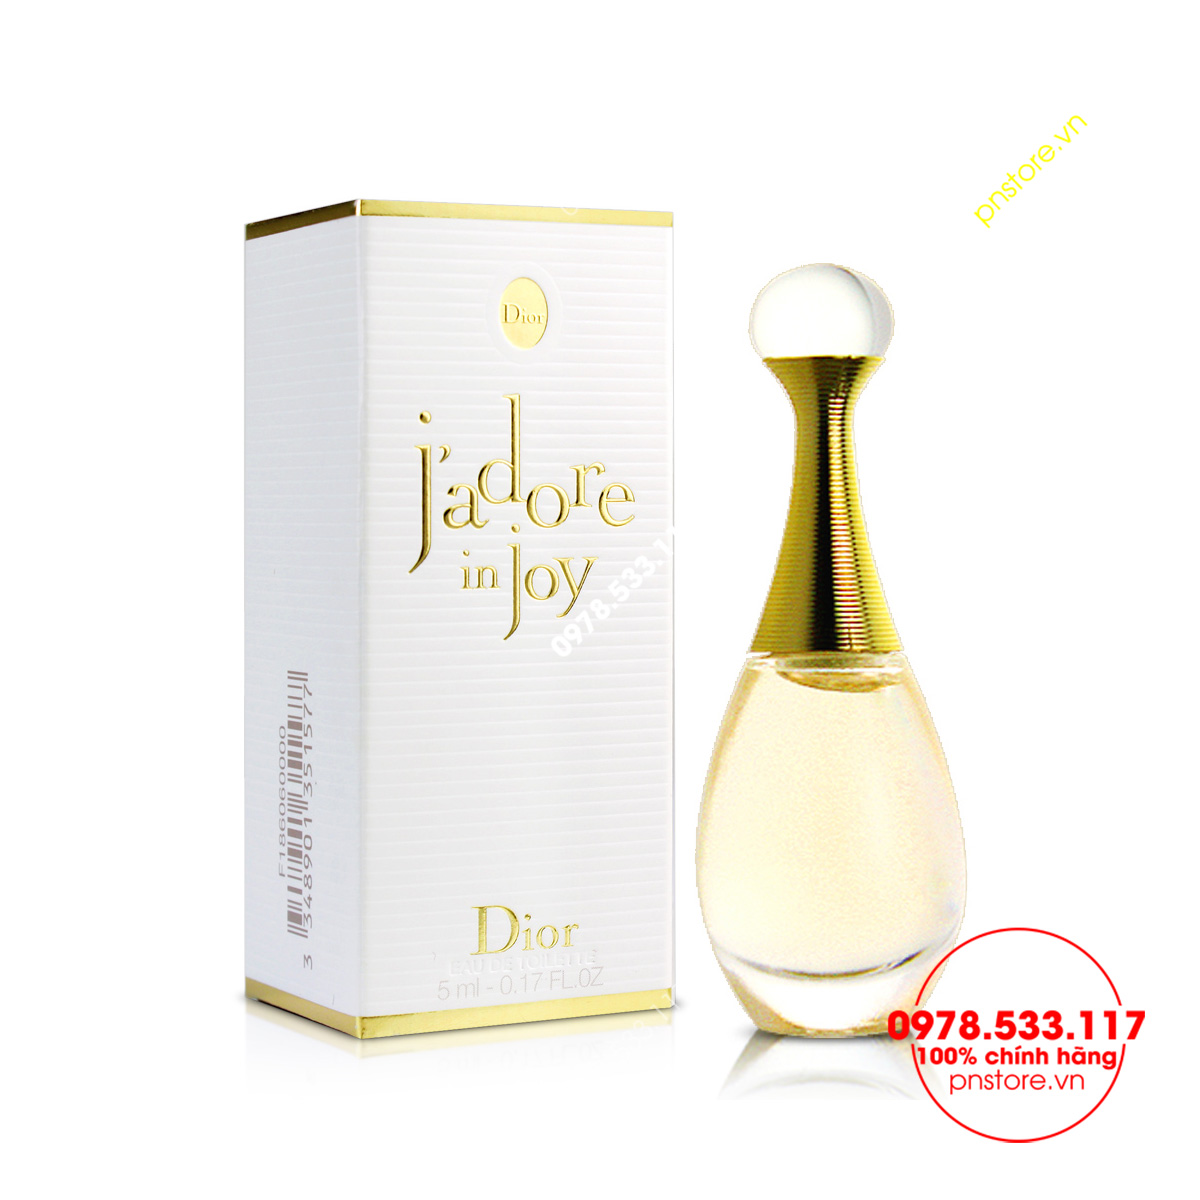 nuoc-hoa-nu-dior-jadore-in-joy-edt-mini-5ml-mau-moi-2019-nap-xoay-l45626